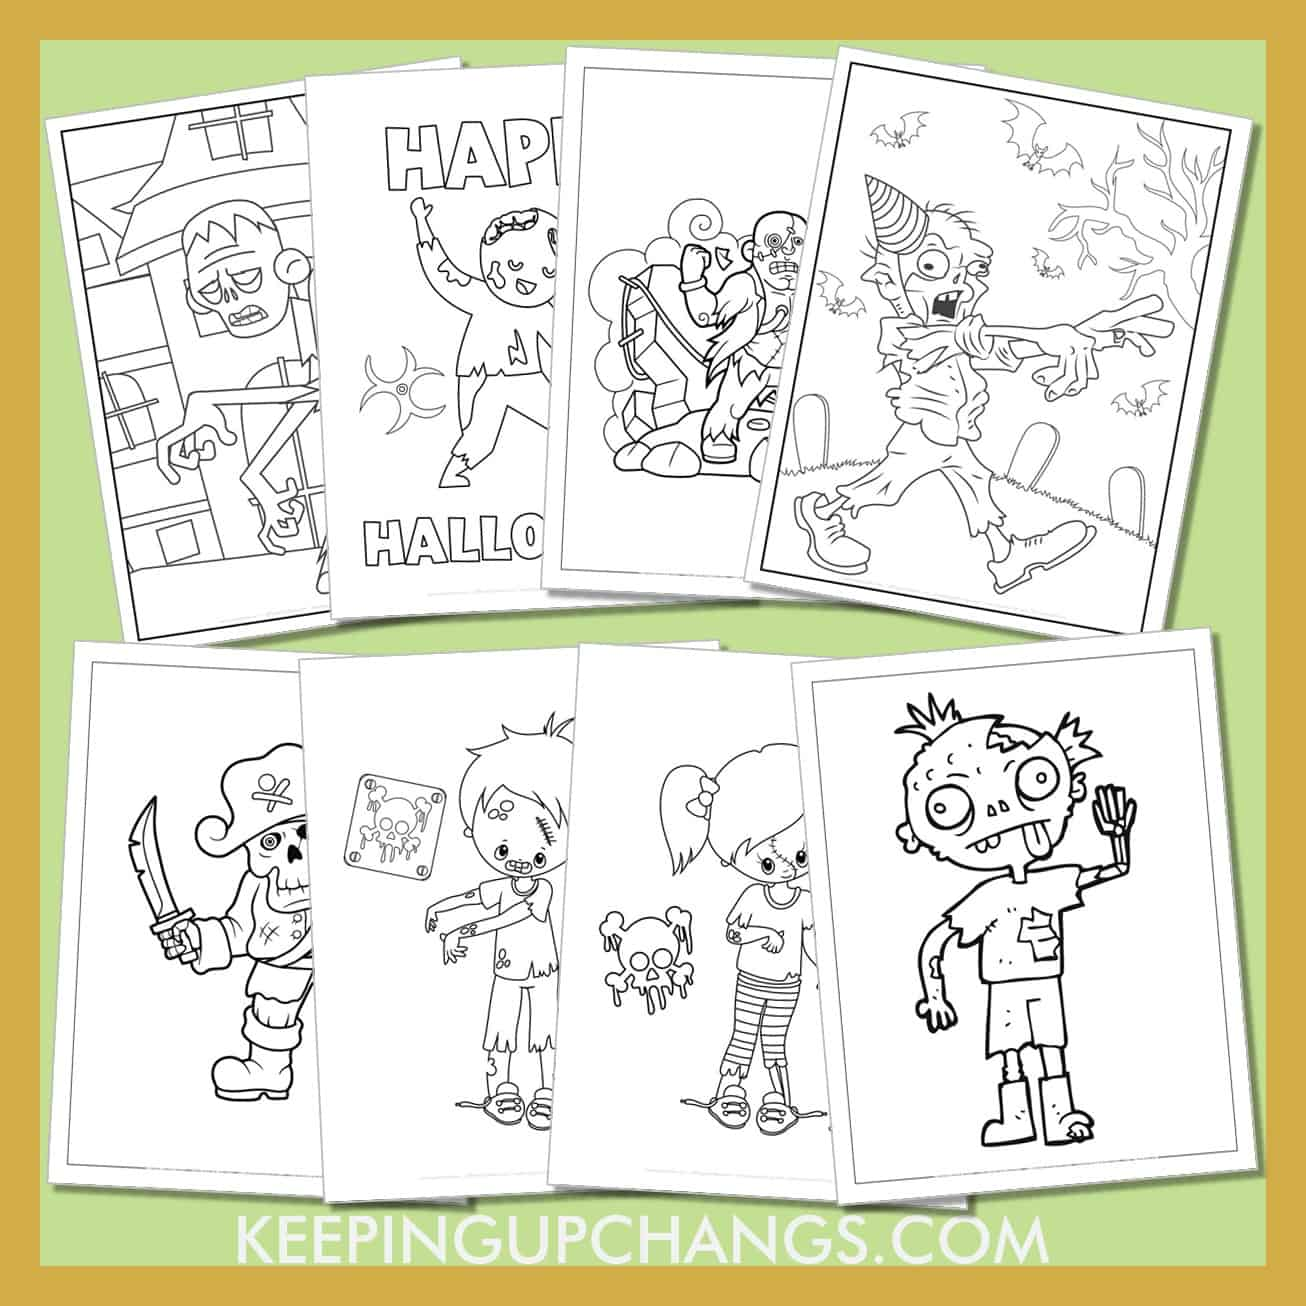 zombie colouring sheets including realistic, scary, cute, scary designs and more.